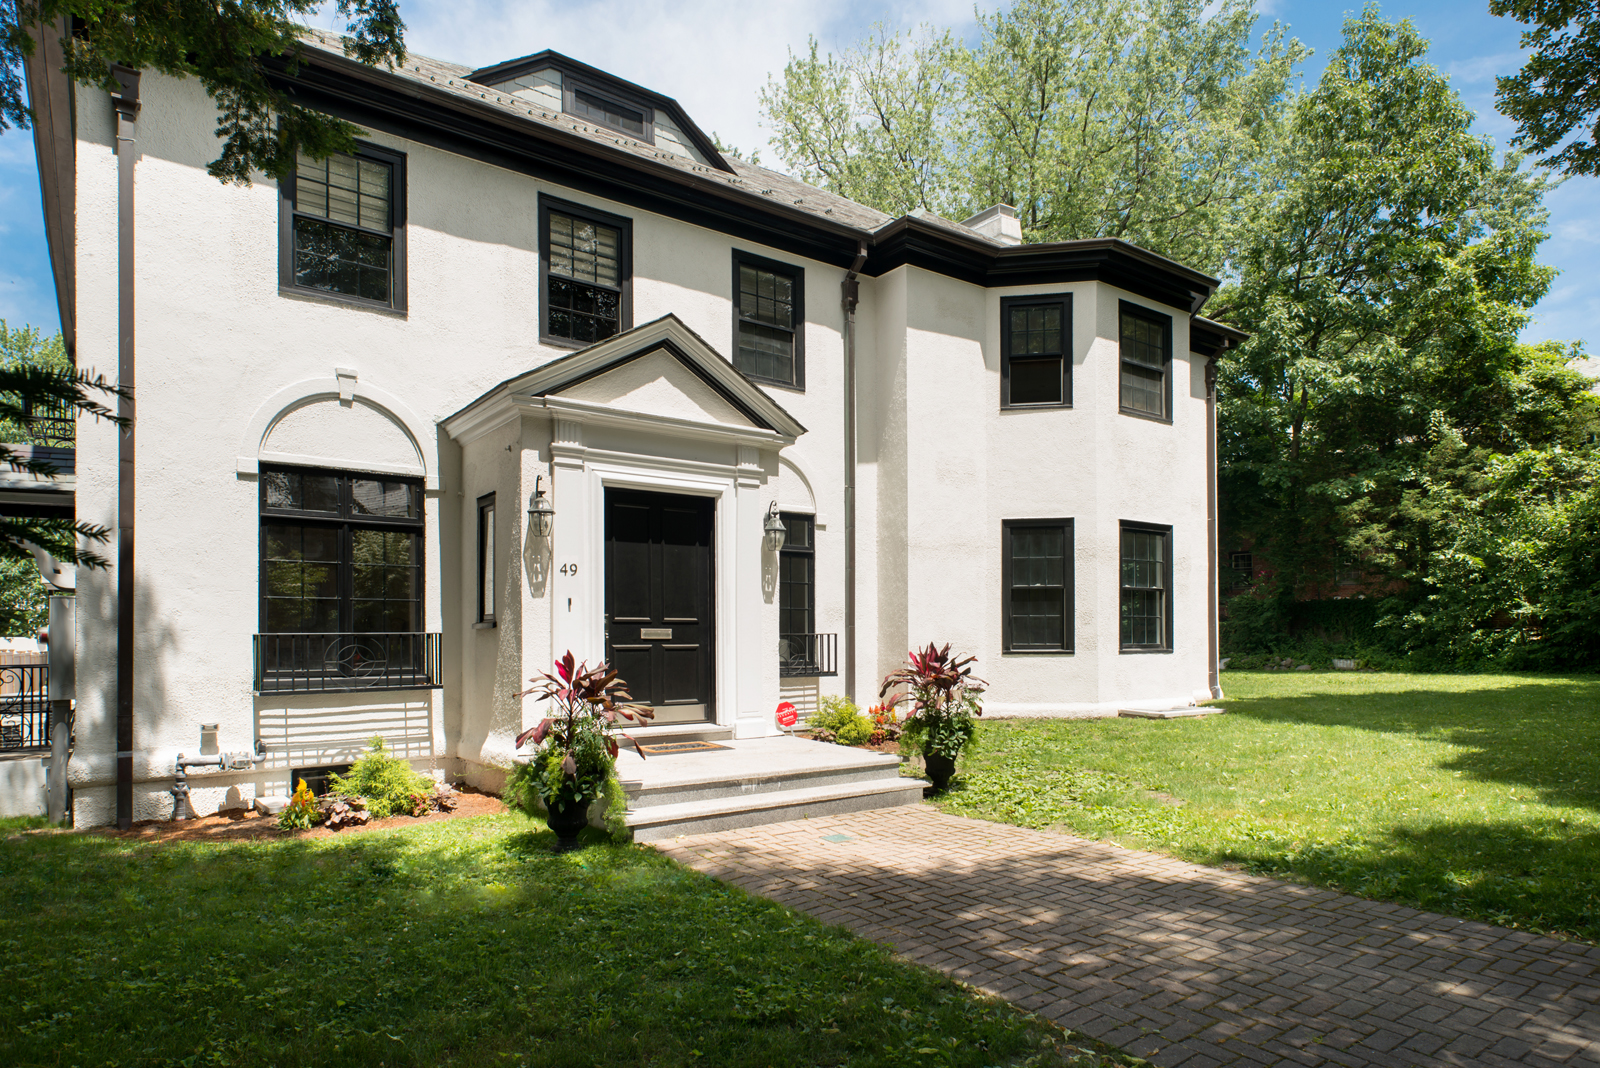 Single Family Home for Sale at Striking Well Located Home 49 Worthington Road Brookline, 02446 United States